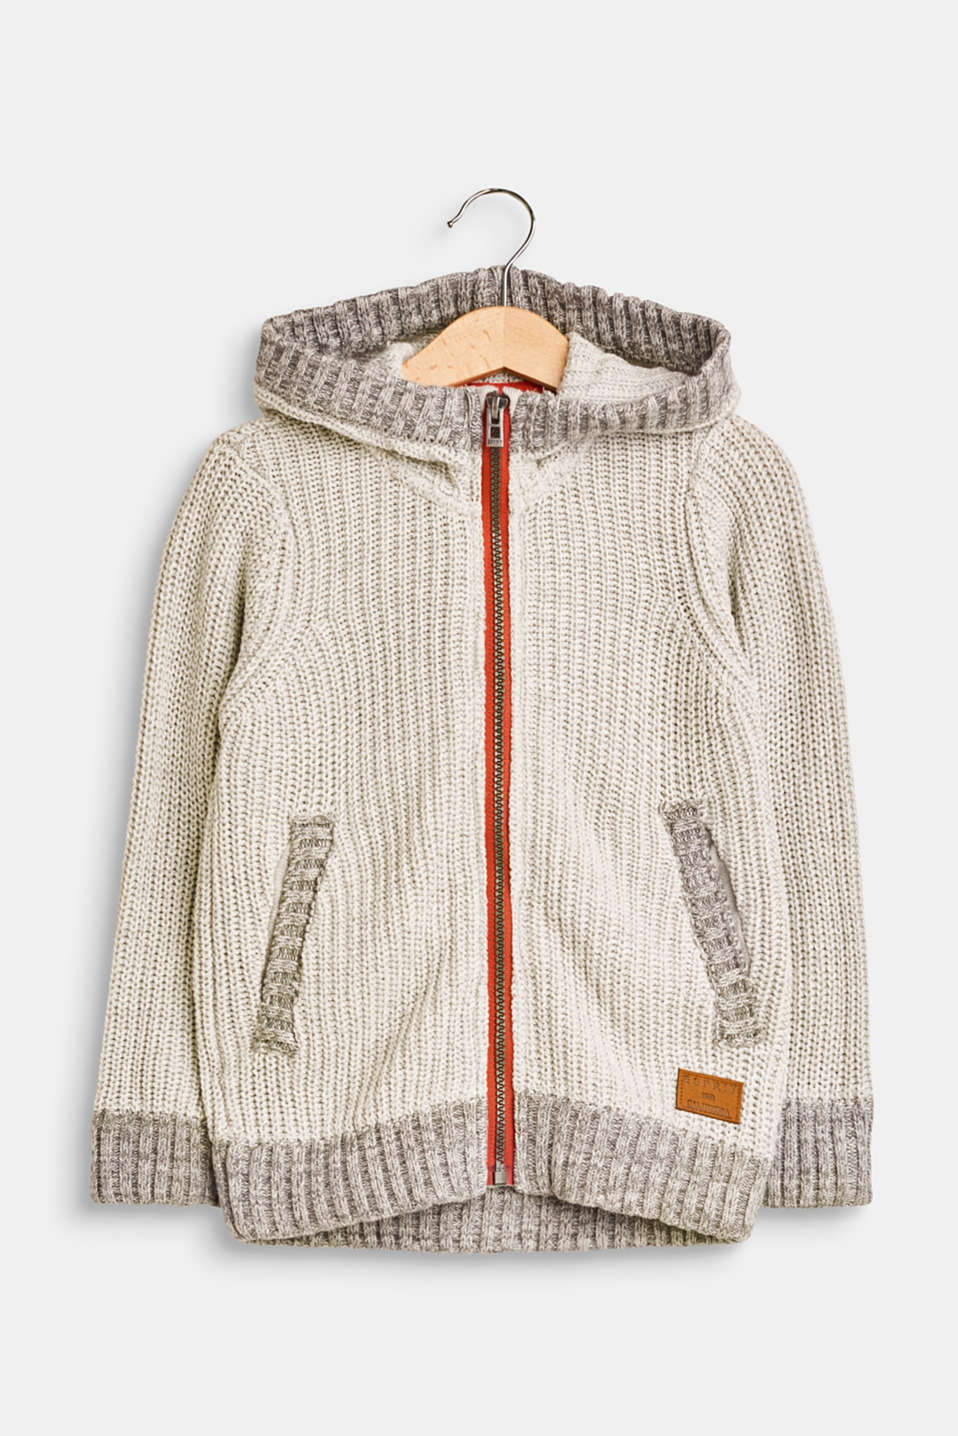 Esprit - Hooded rib knit cardigan, cotton